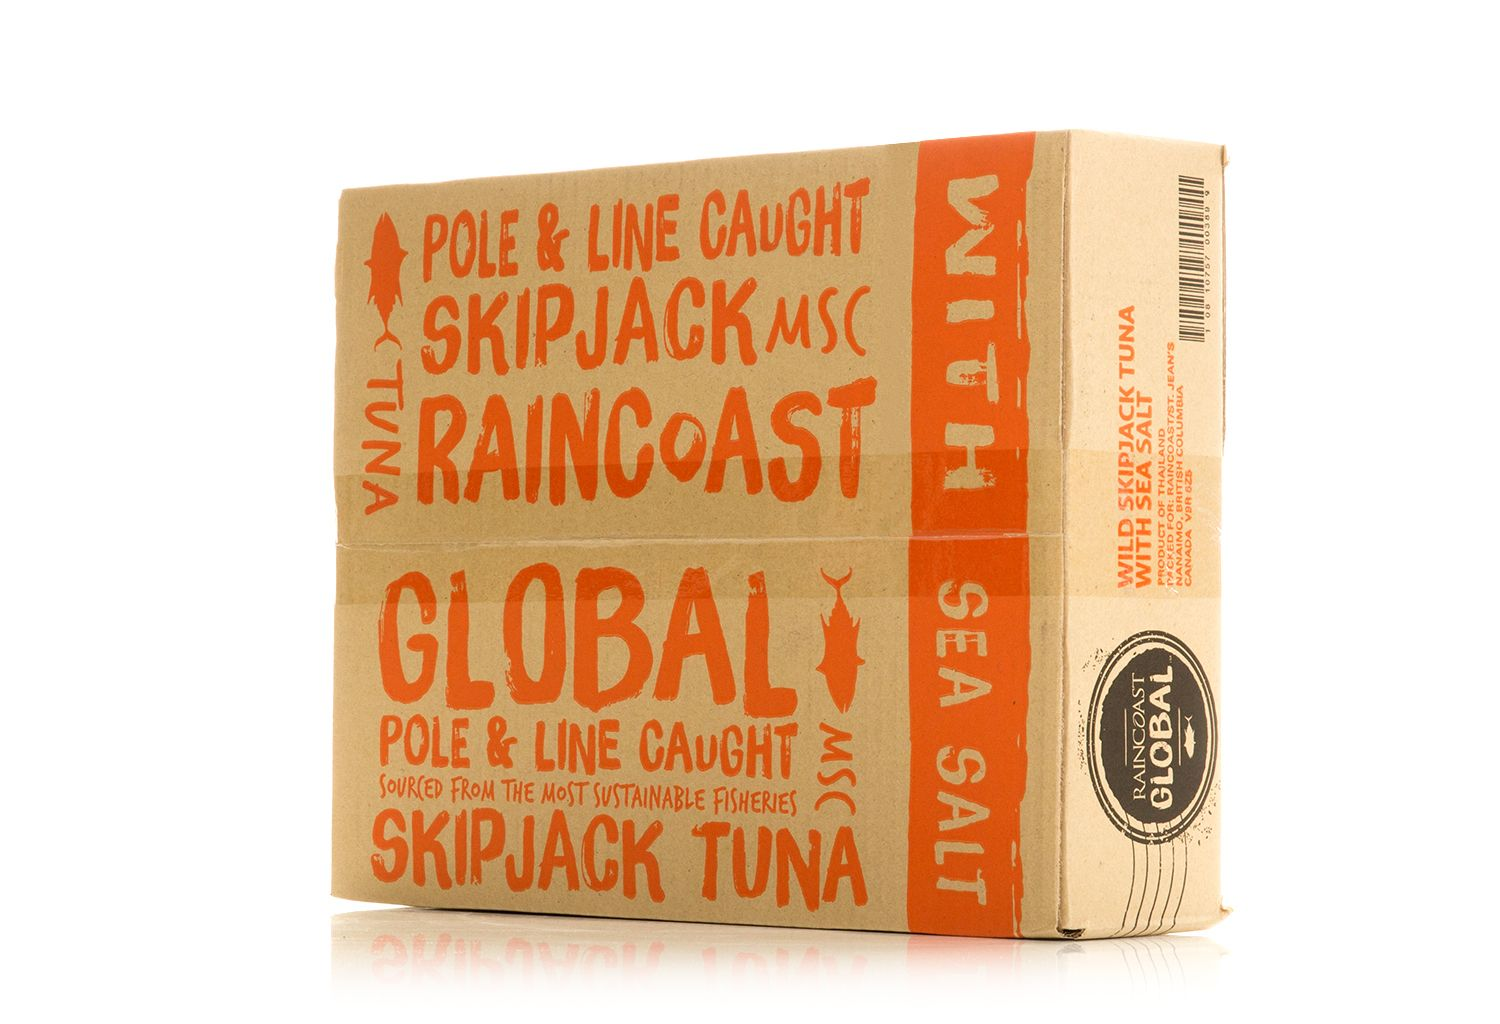 Raincoast global canned seafood on packaging of the world